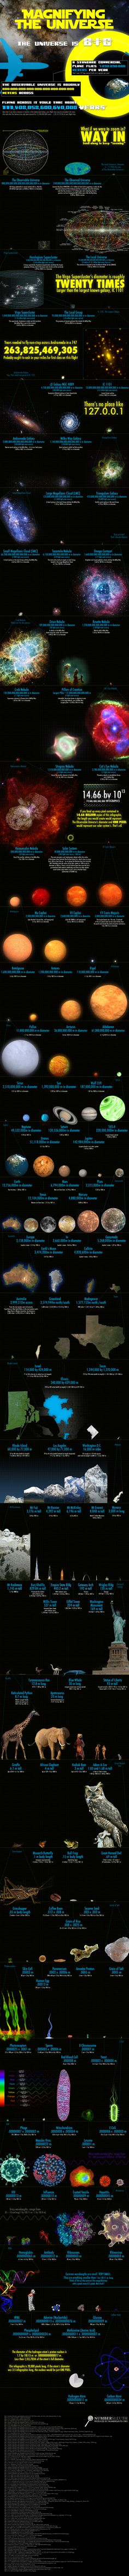 The Scale of the Cosmos: From Atoms to the Supermassive Galaxies Cosmos, Earth Science, Science And Nature, Science Space, Nasa, Universe Size, Space And Astronomy, Quantum Physics, All Nature